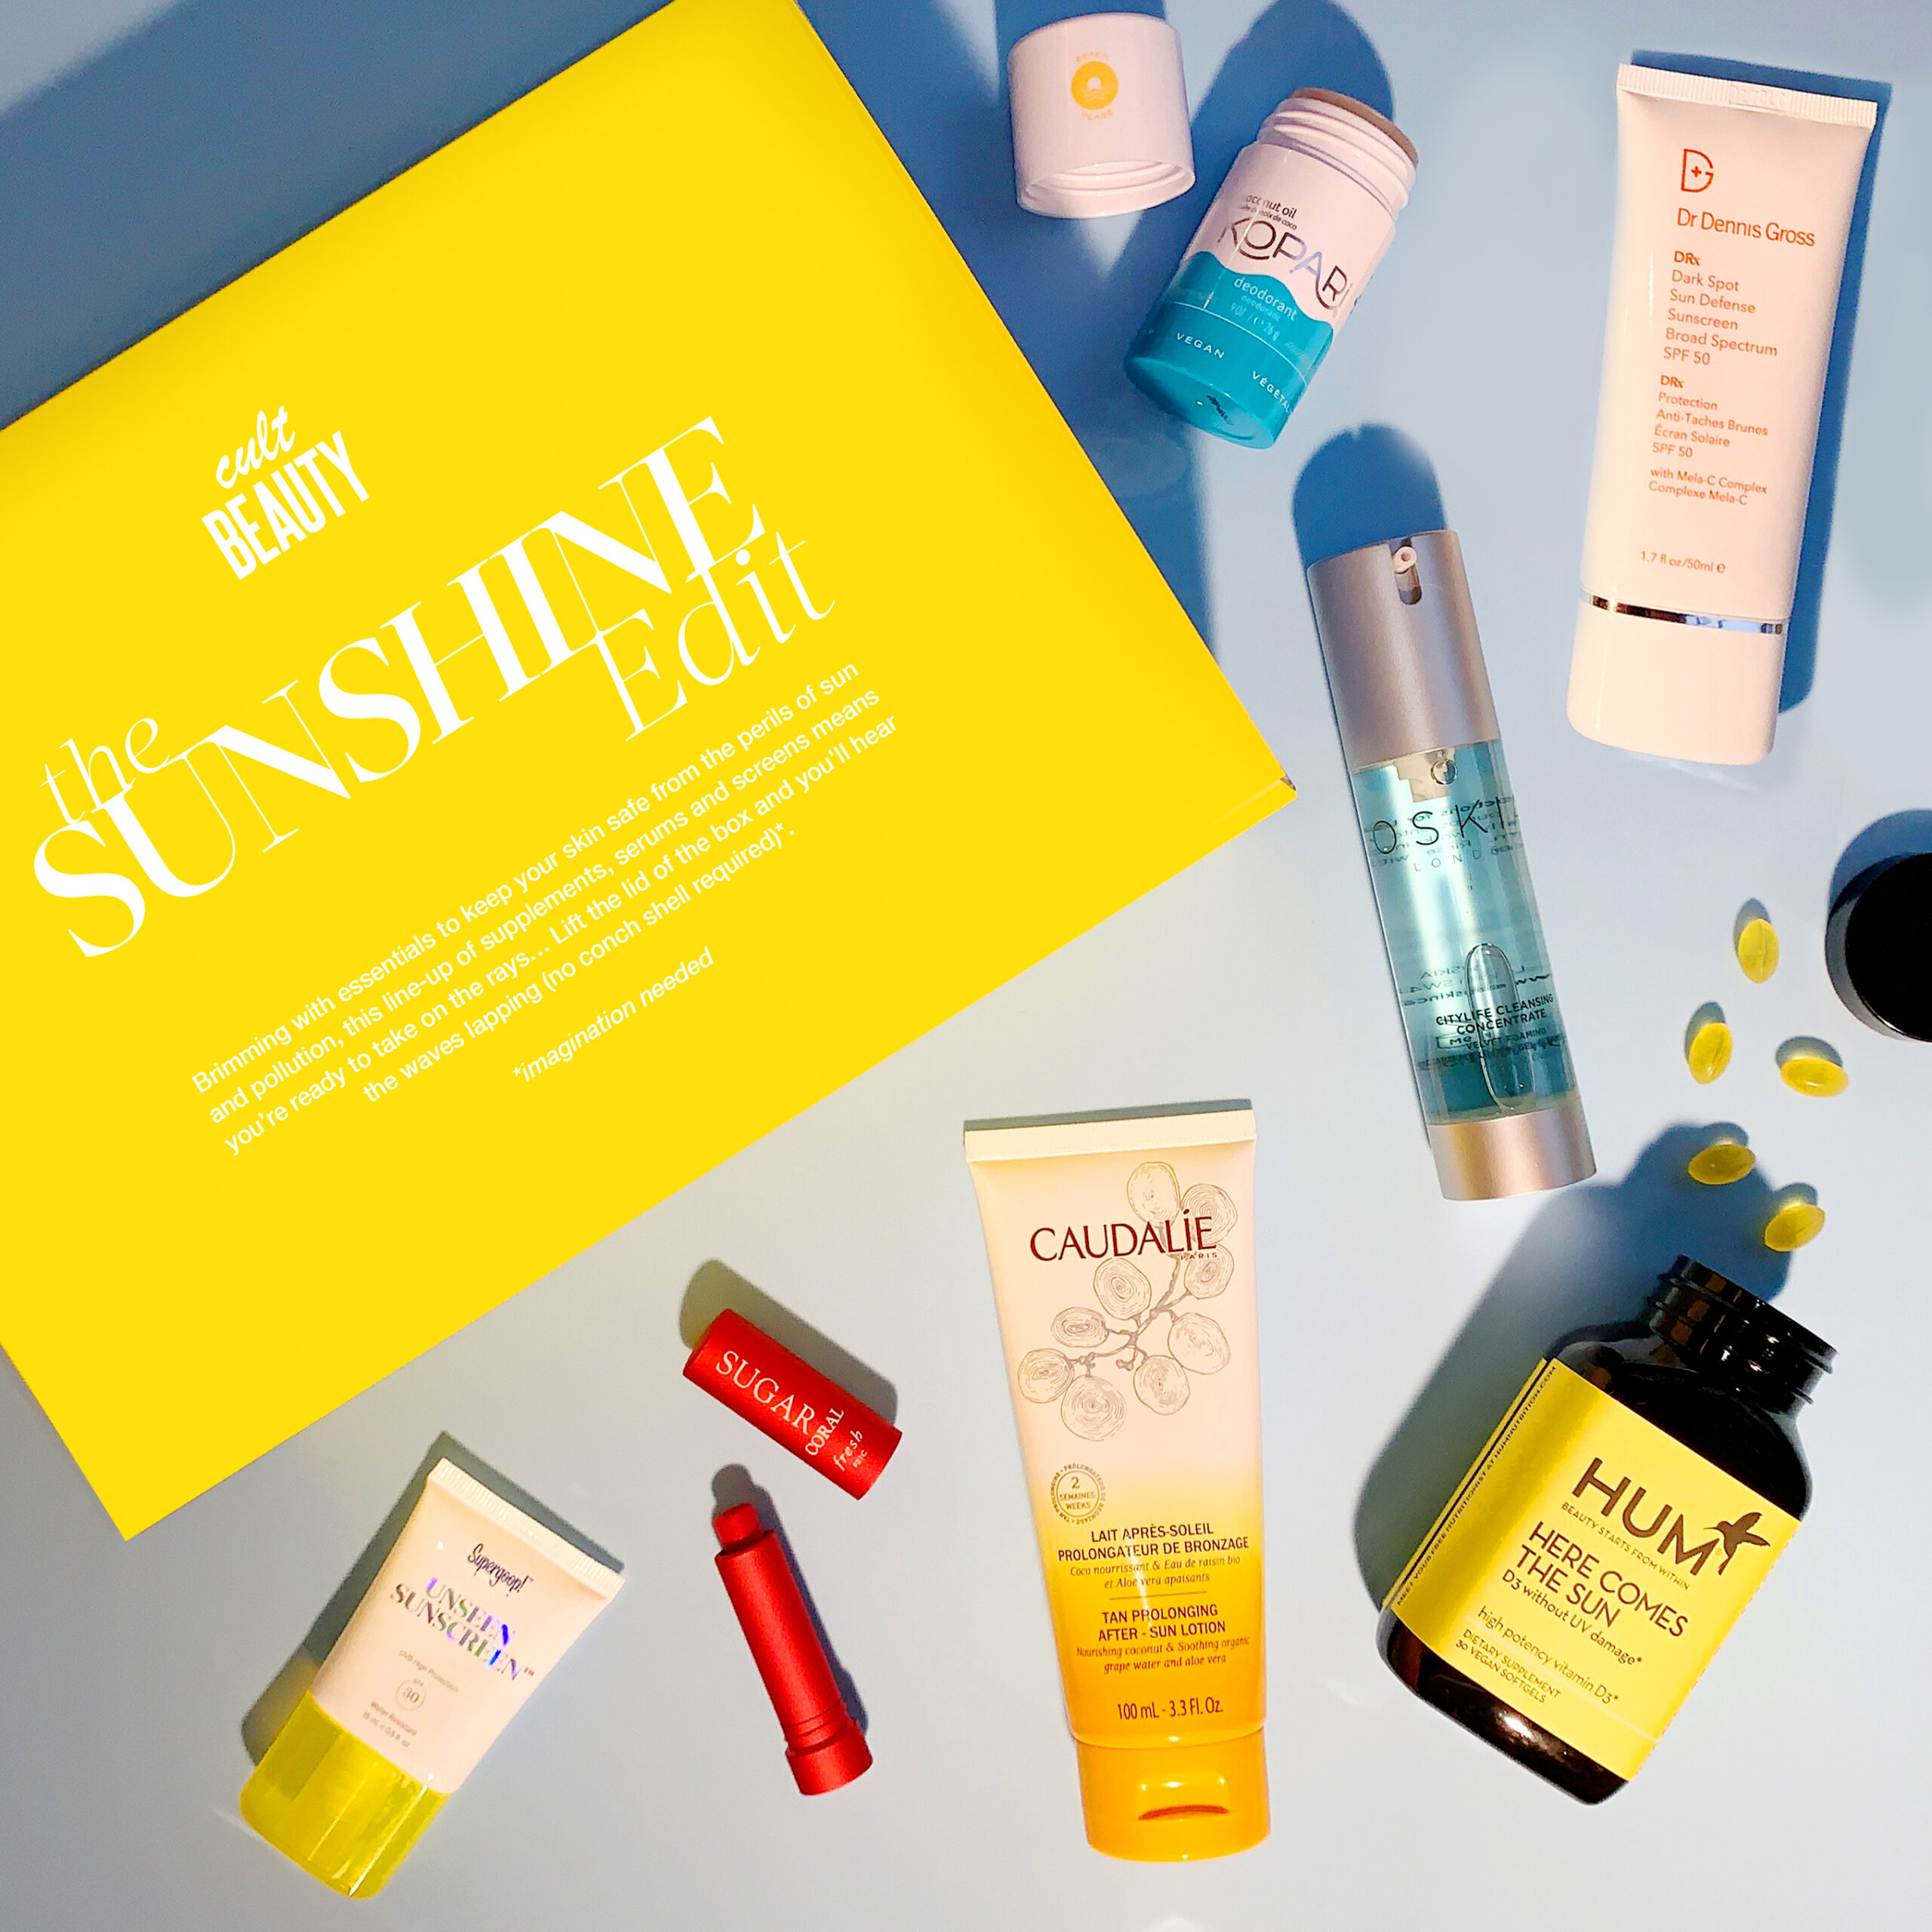 Cult Beauty The Sunshine Edit Beauty and Wellness Box Reveal!